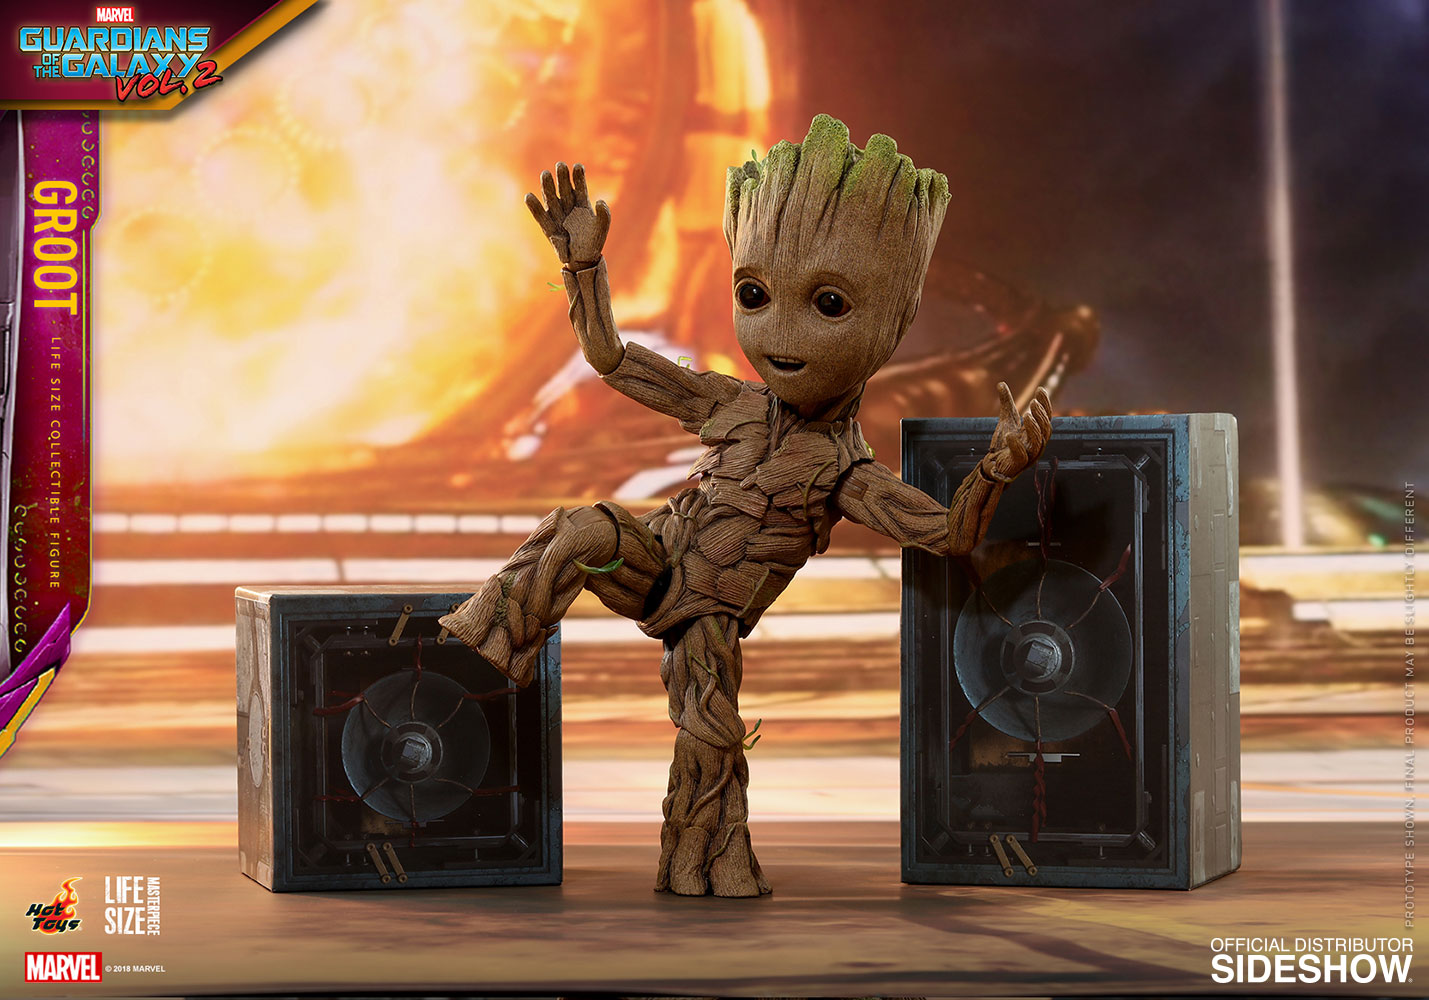 marvel-guardian-of-the-galaxy-vol2-groot-life-size-figure-hot-toys-1